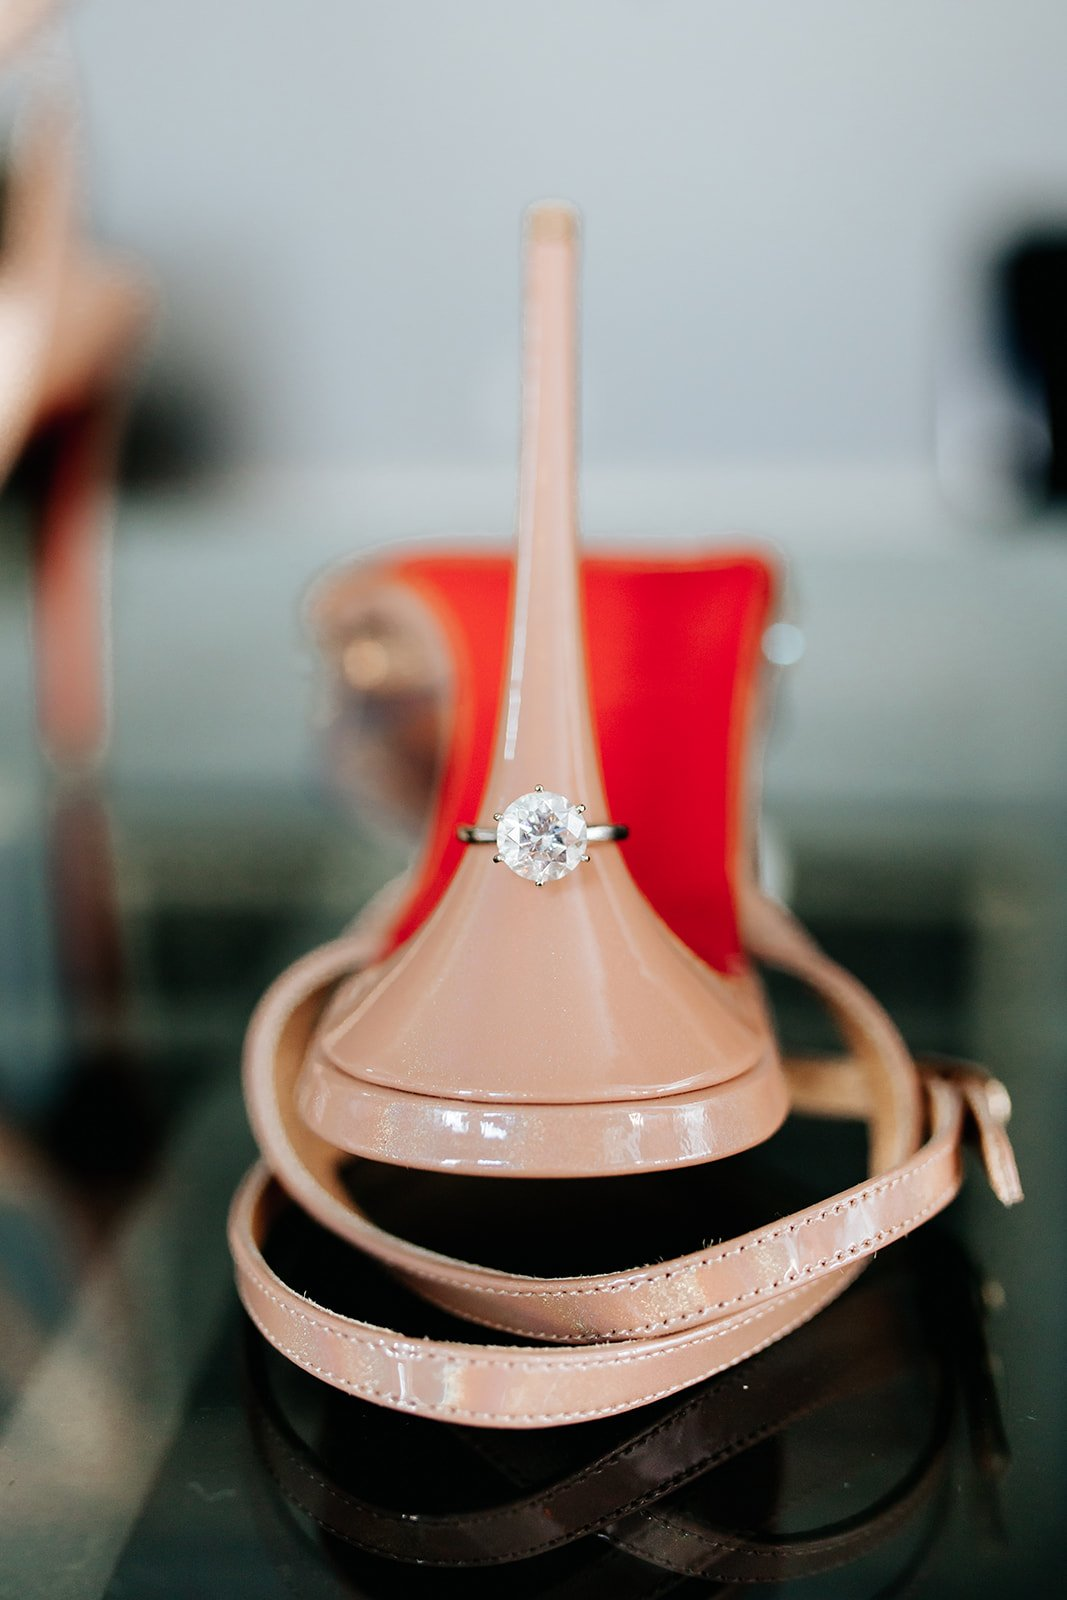 woman engagement ring on the upside down heel with red bottom